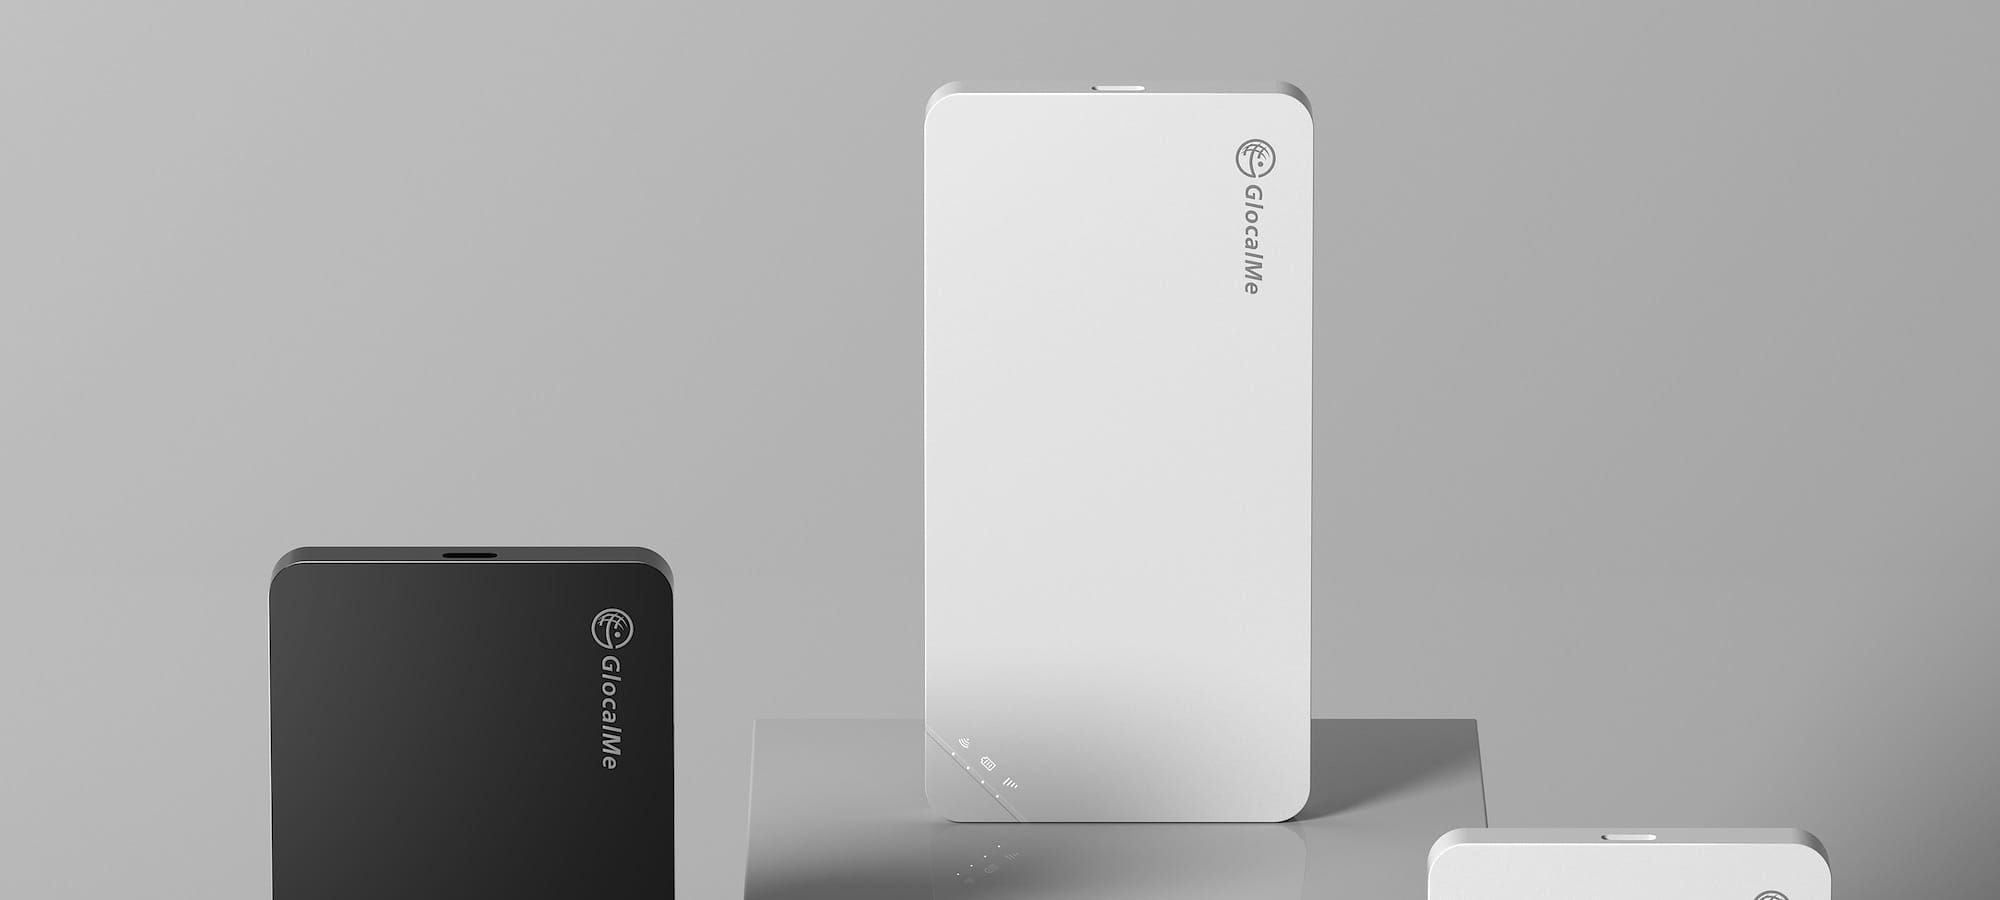 GlocalMe U3 mobile Wi-Fi hotspot comes with one gigabyte of global data